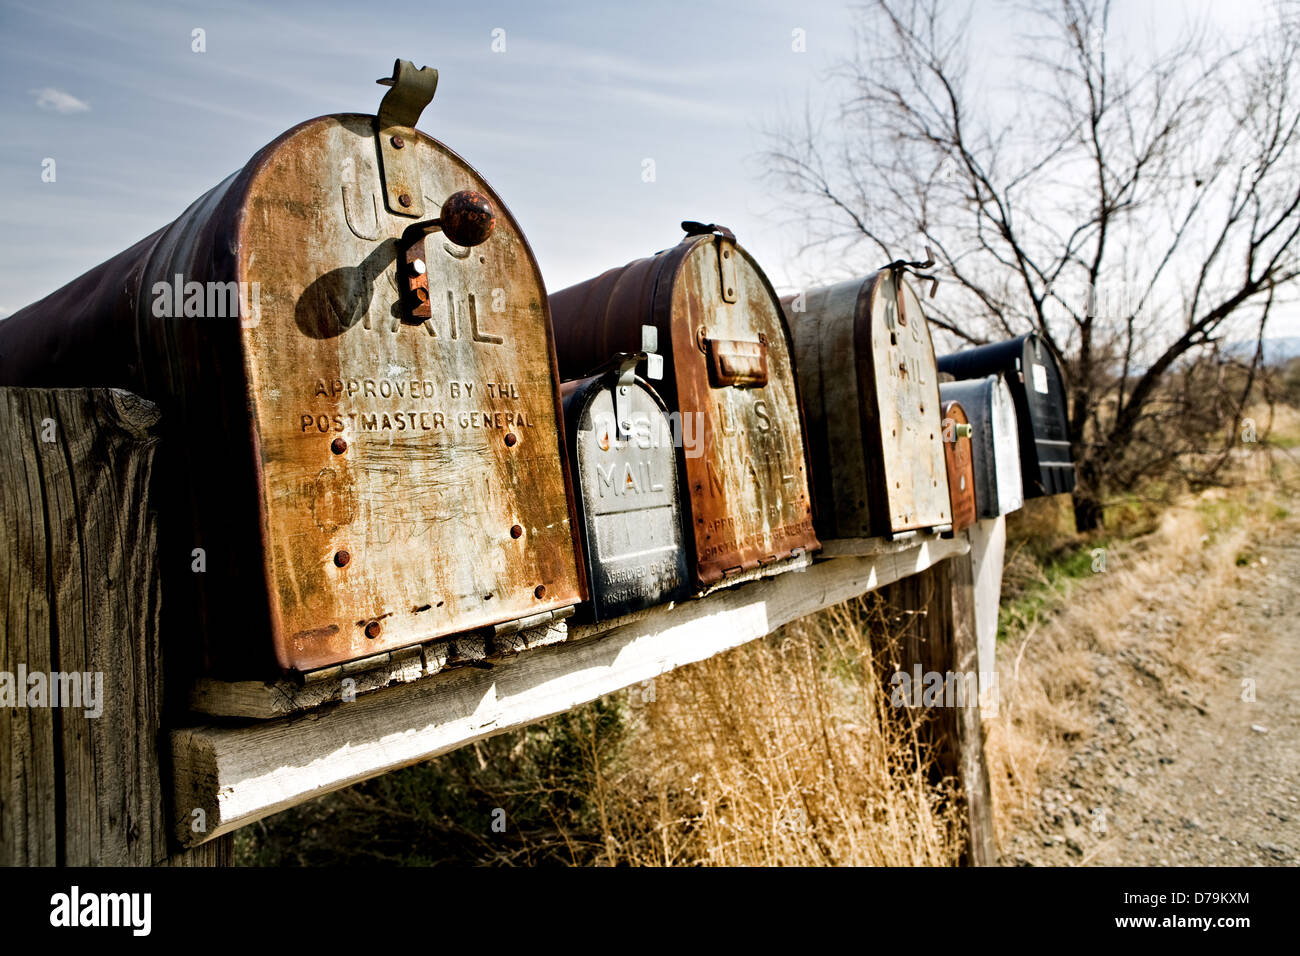 Old vintage mailboxes in rural Midwest United States, late sun - Stock Image